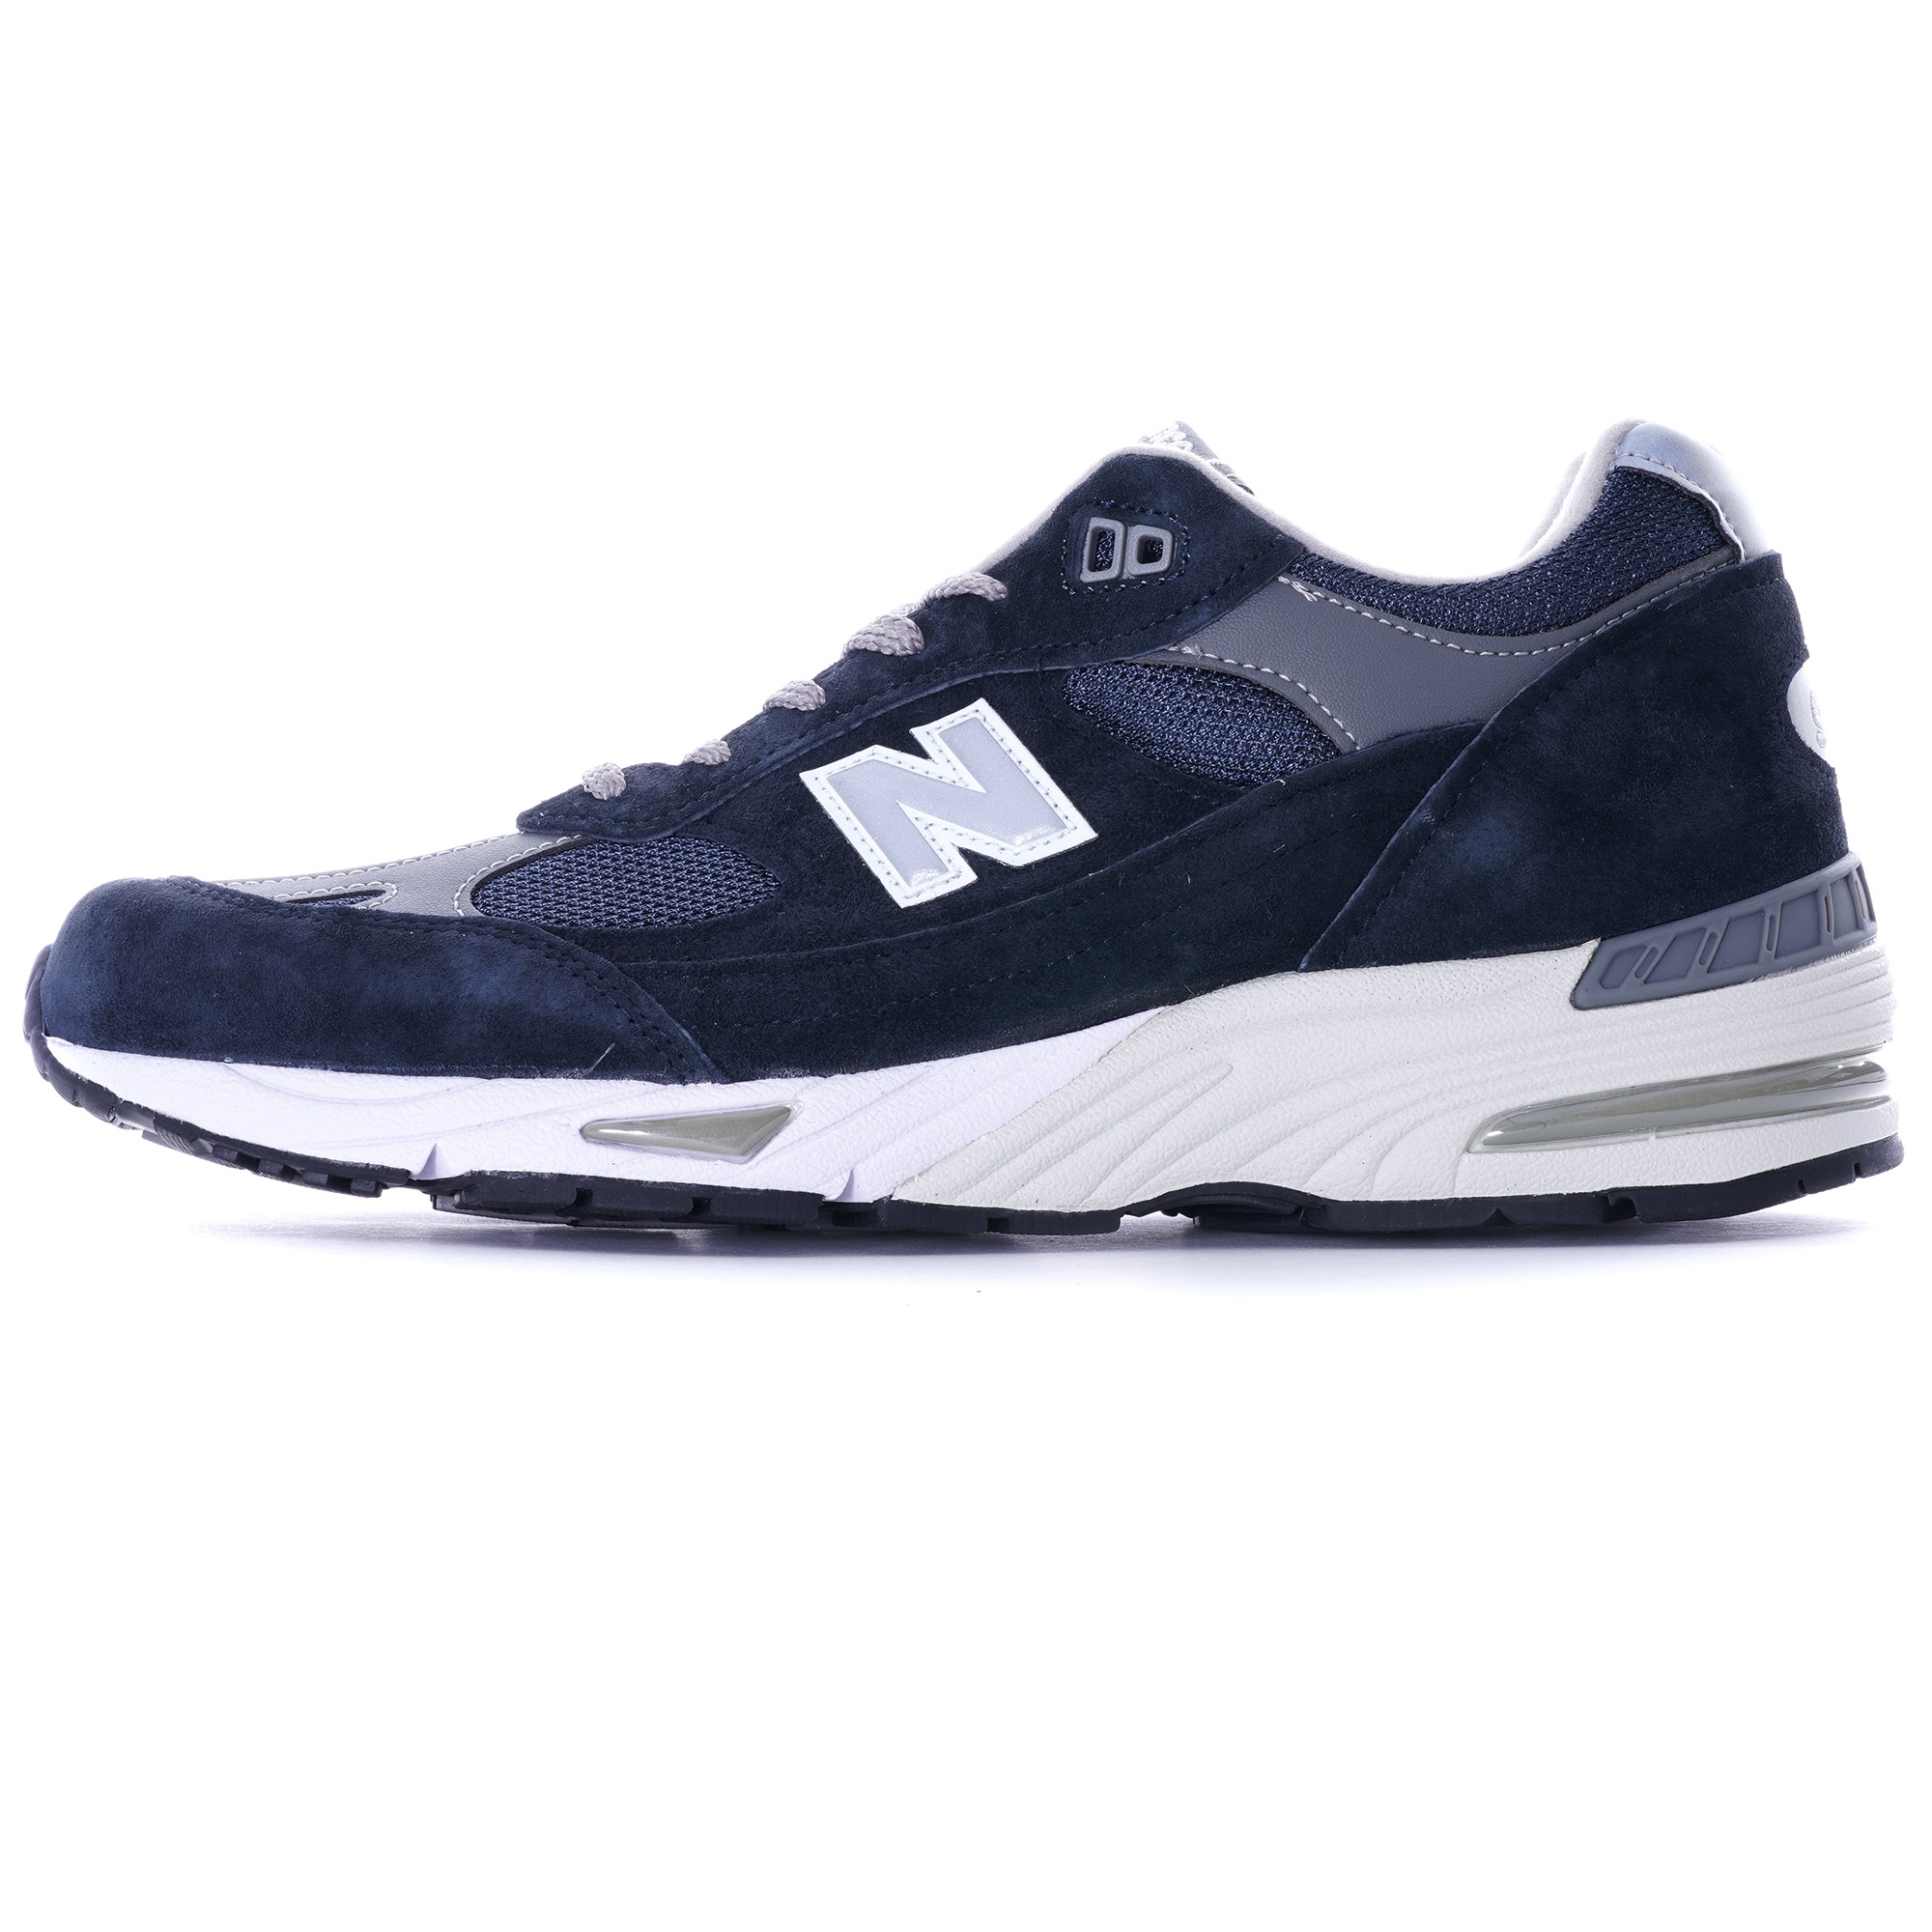 New Balance Made In England 991 - Navy